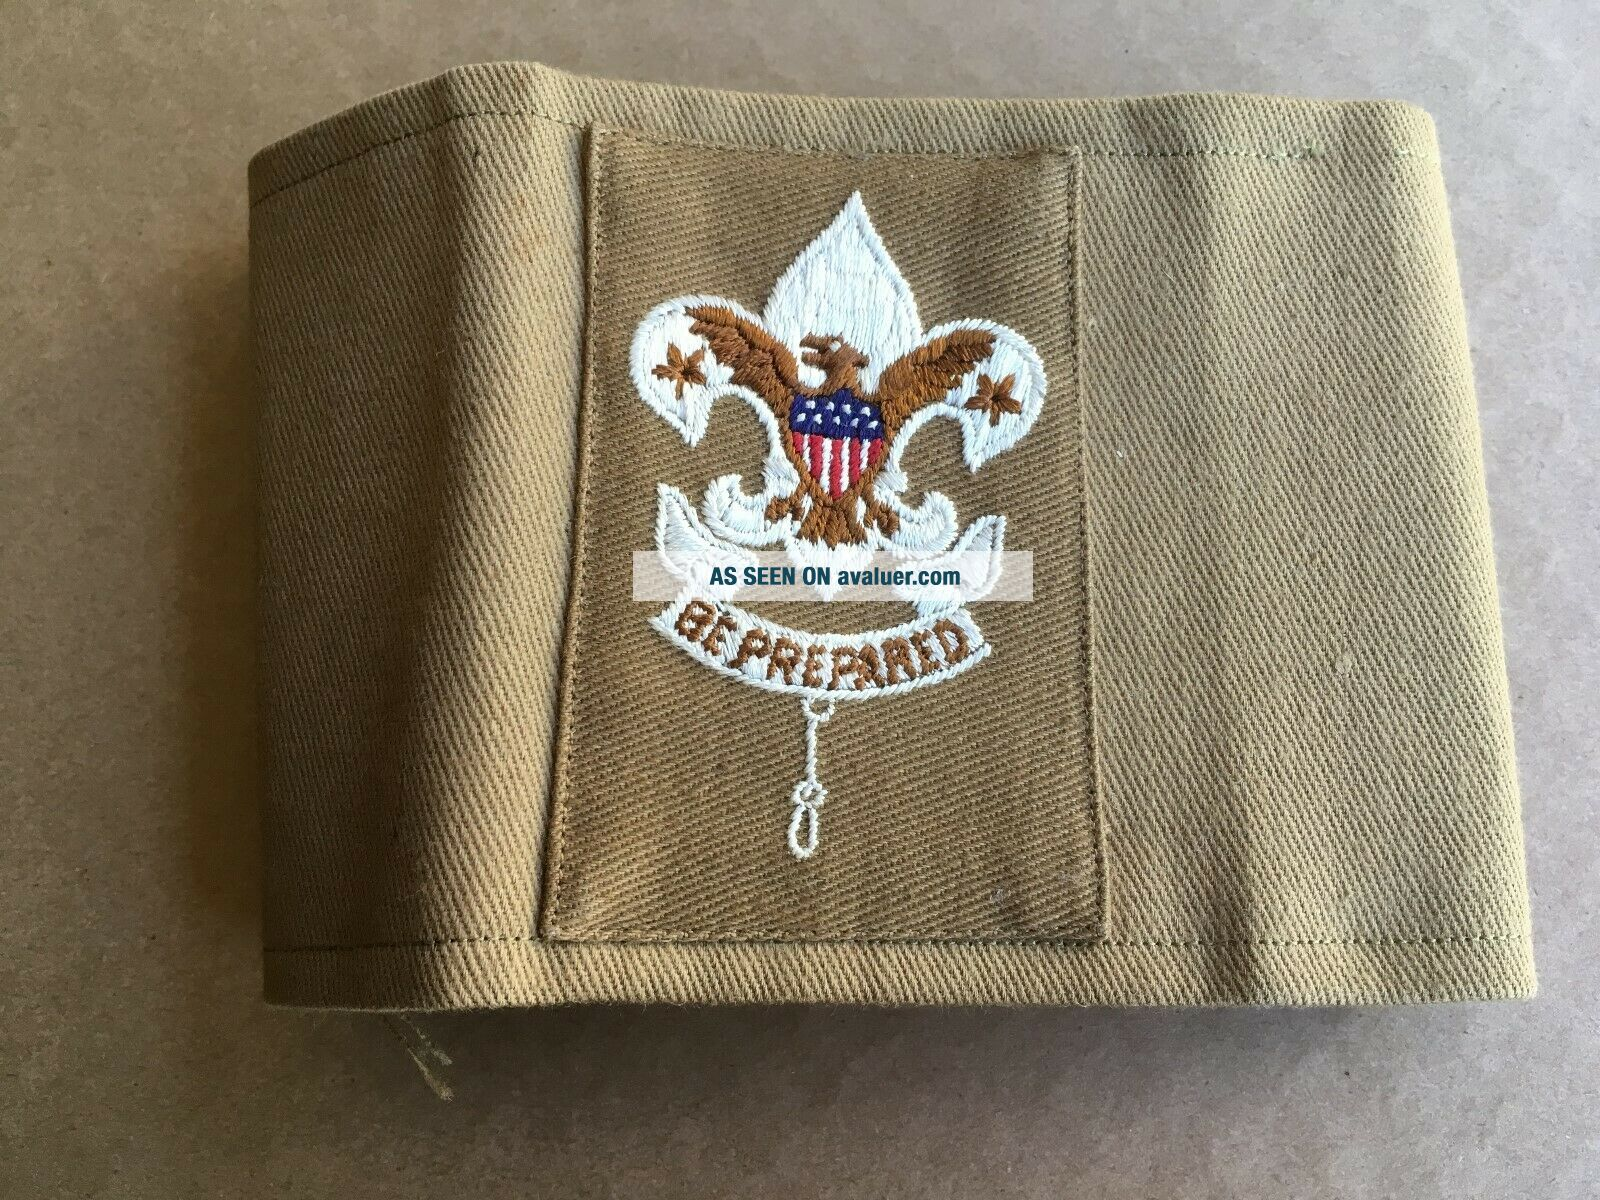 1st Issue 1910 ' s Tan Layman - Troop Commitee Armband Insignia Rank Patch